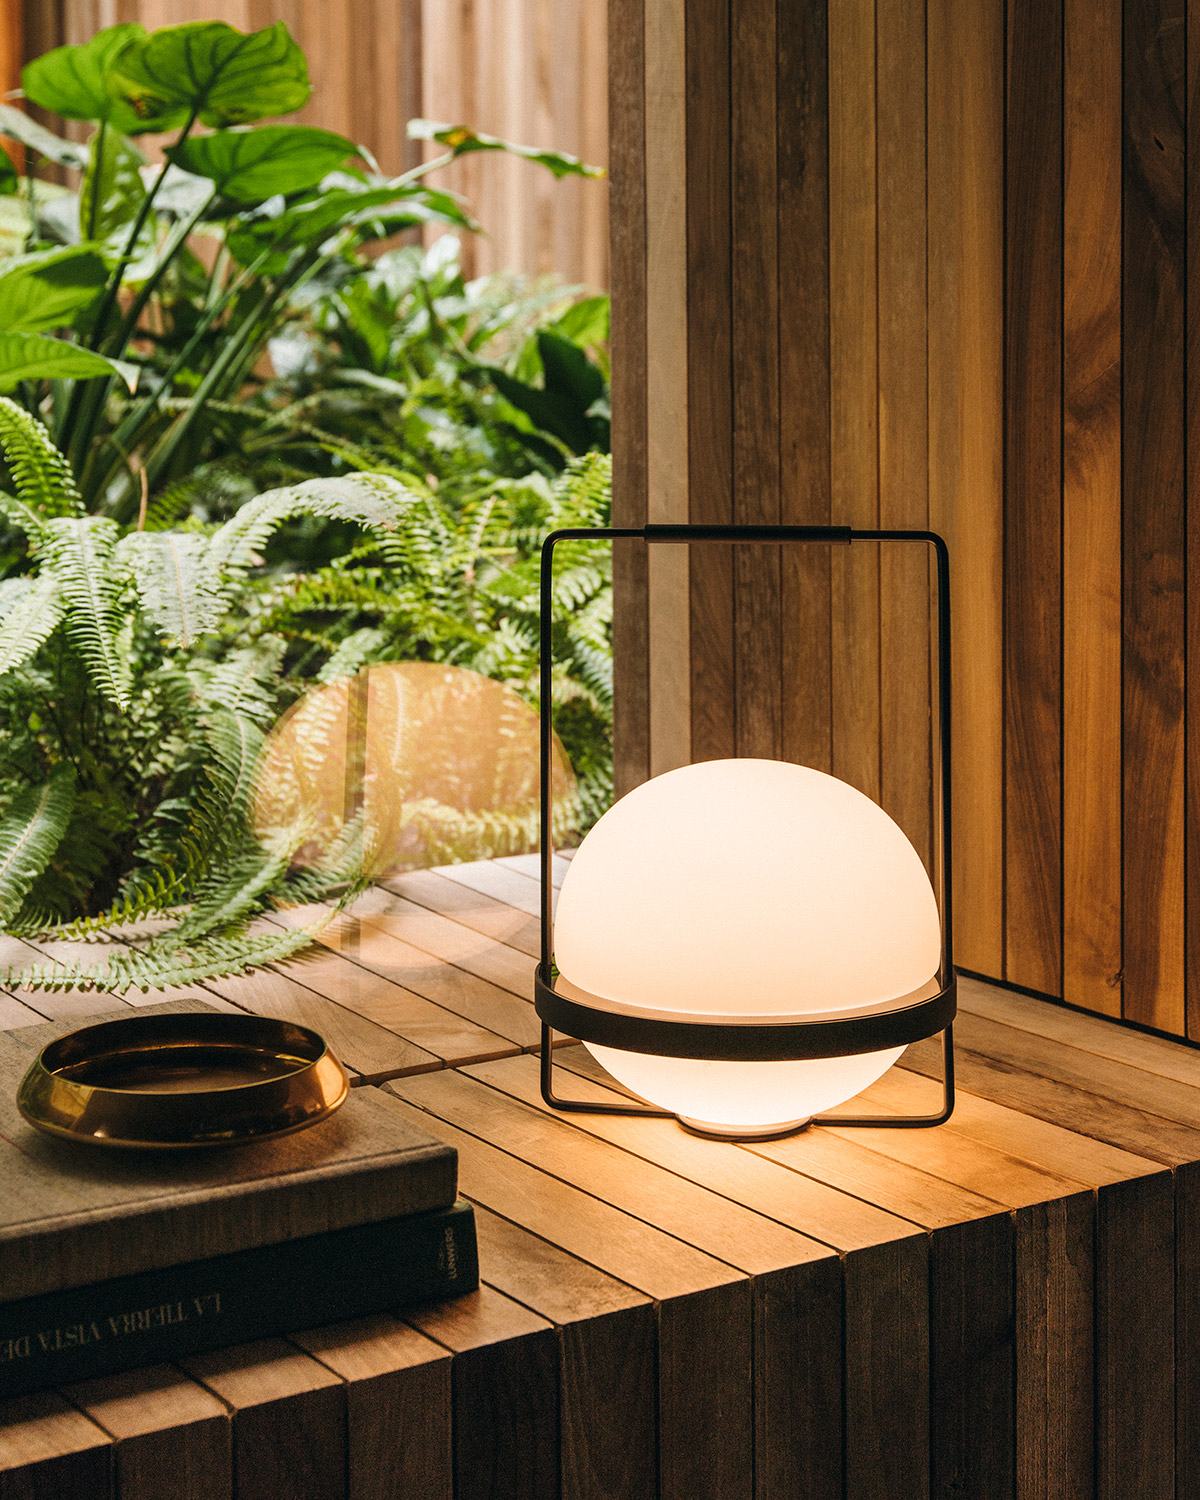 Palma table lamp by Vibia on modern wooden windowsill, background tropical plants